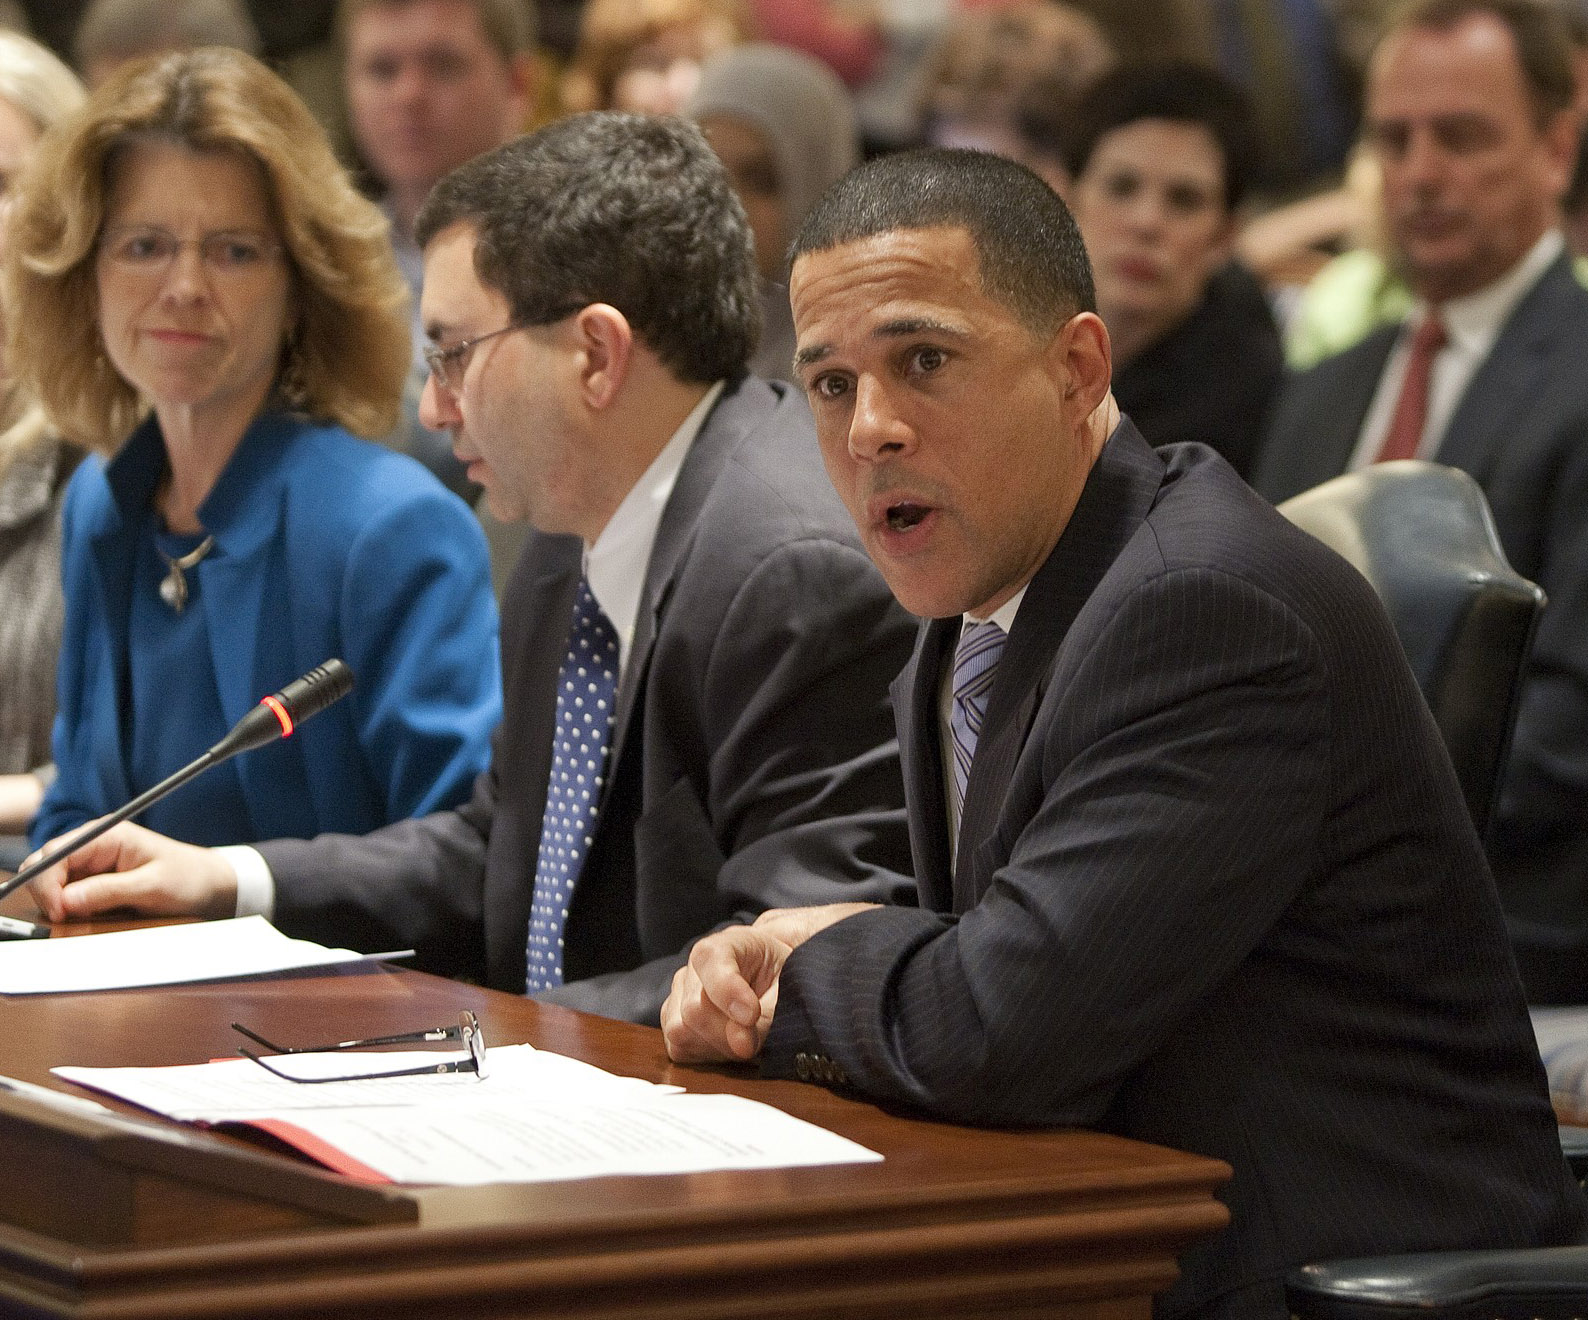 From right: Lt. Gov. Anthony Brown, Health Secretary Joshu Sharfstein and director of health care reform Carolyn Quattrocki testify on legislation in 2012 (MdGovPics)